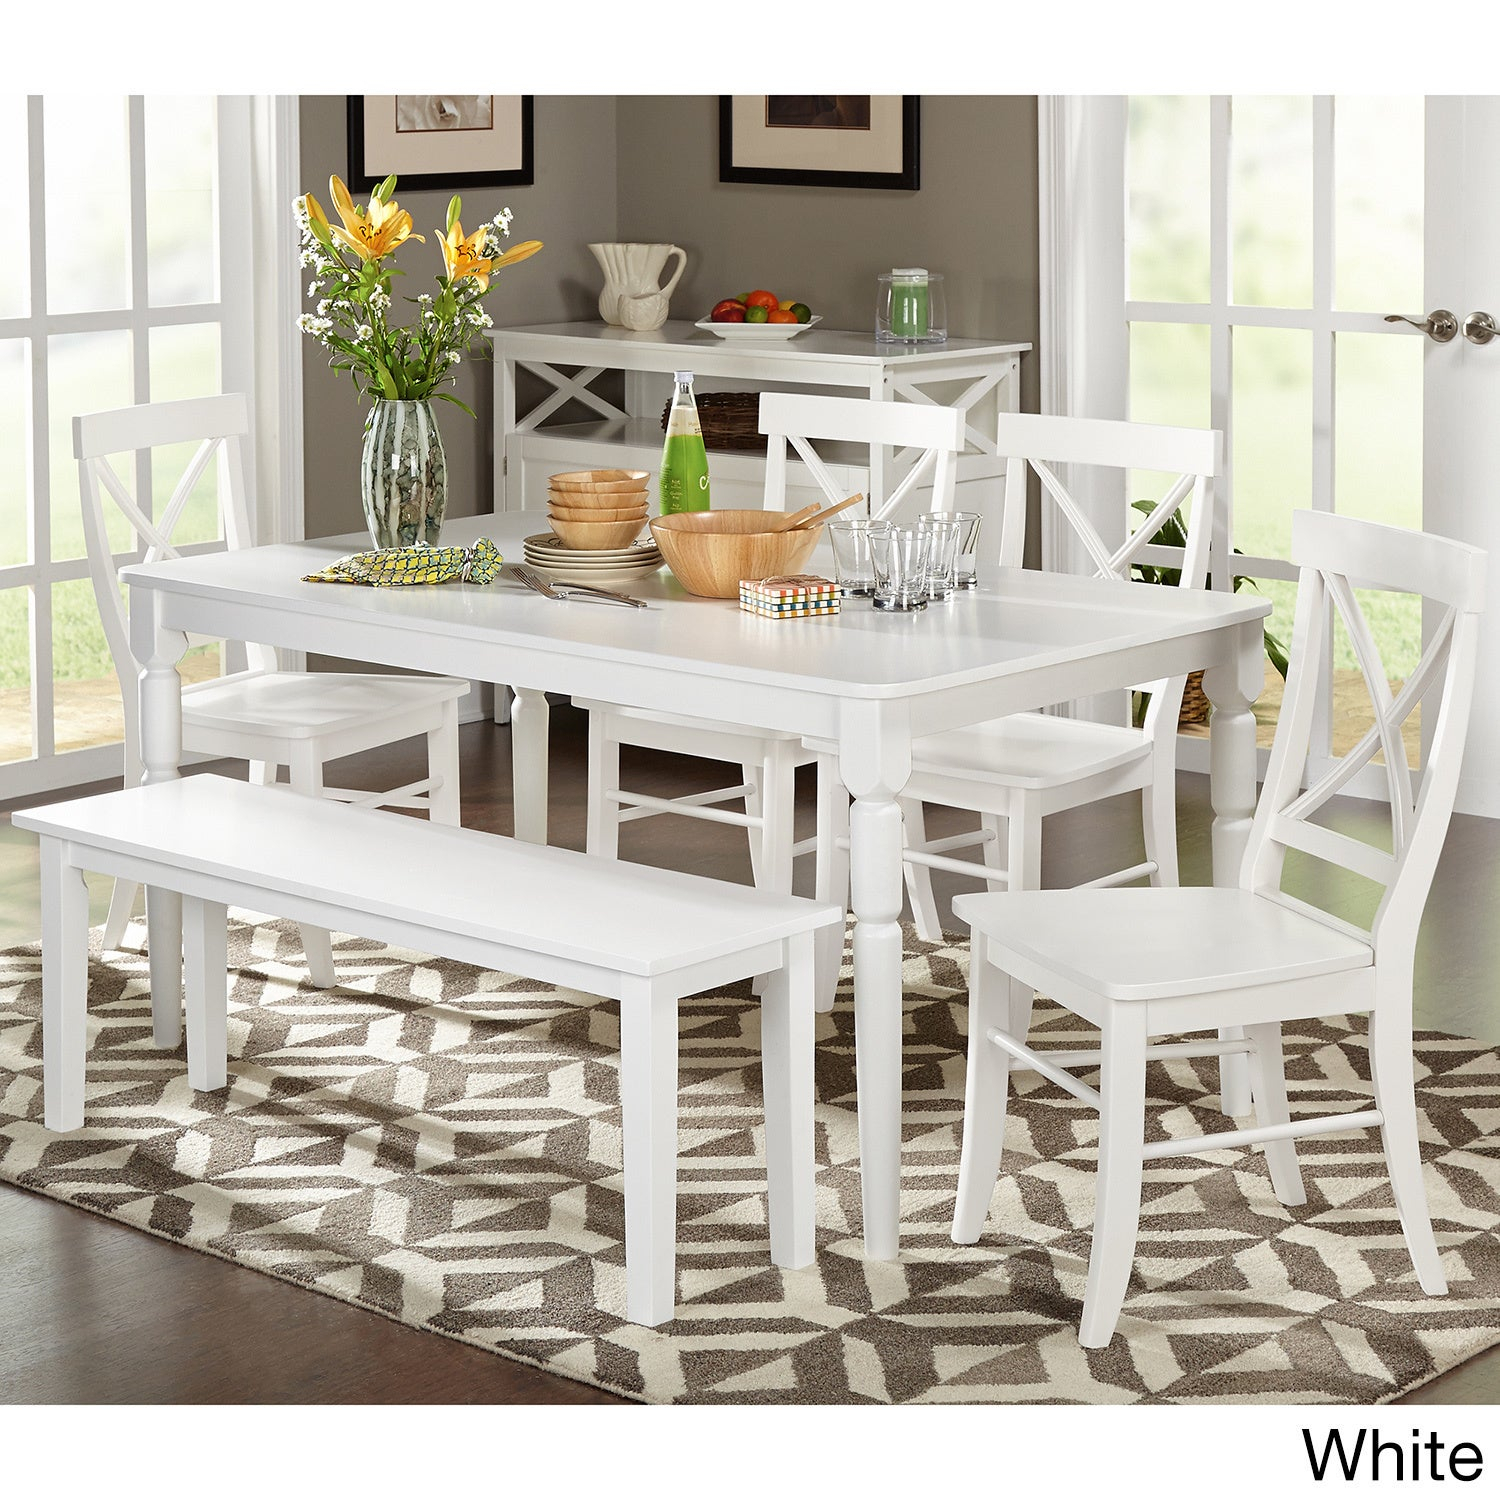 Buy Farmhouse Kitchen & Dining Room Sets Online At Overstock | Our In Best And Newest Falmer 3 Piece Solid Wood Dining Sets (View 16 of 20)